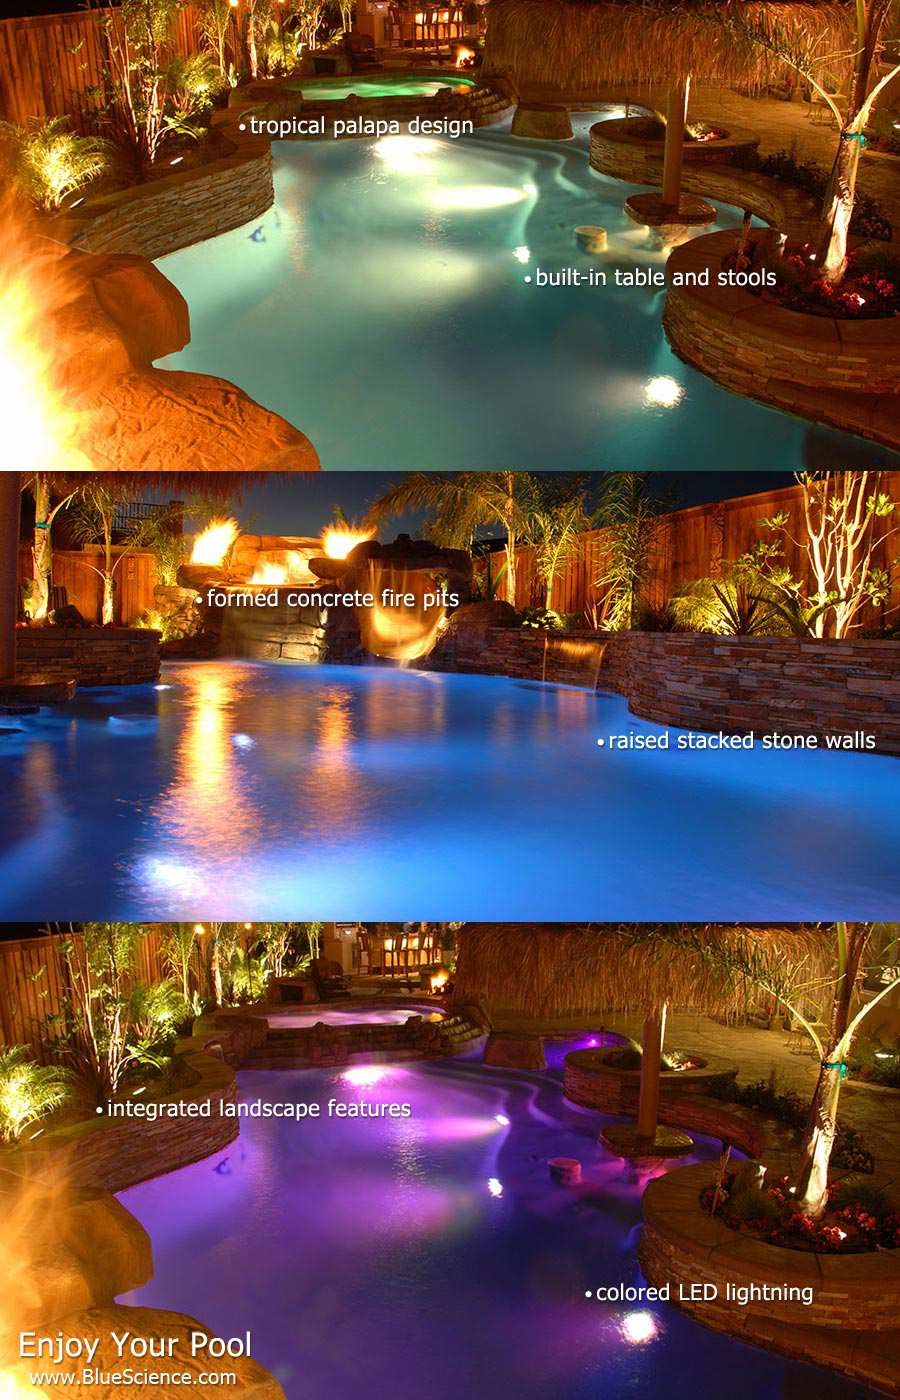 Superbly Built Pools & Spas for San Antonio by Blue Science